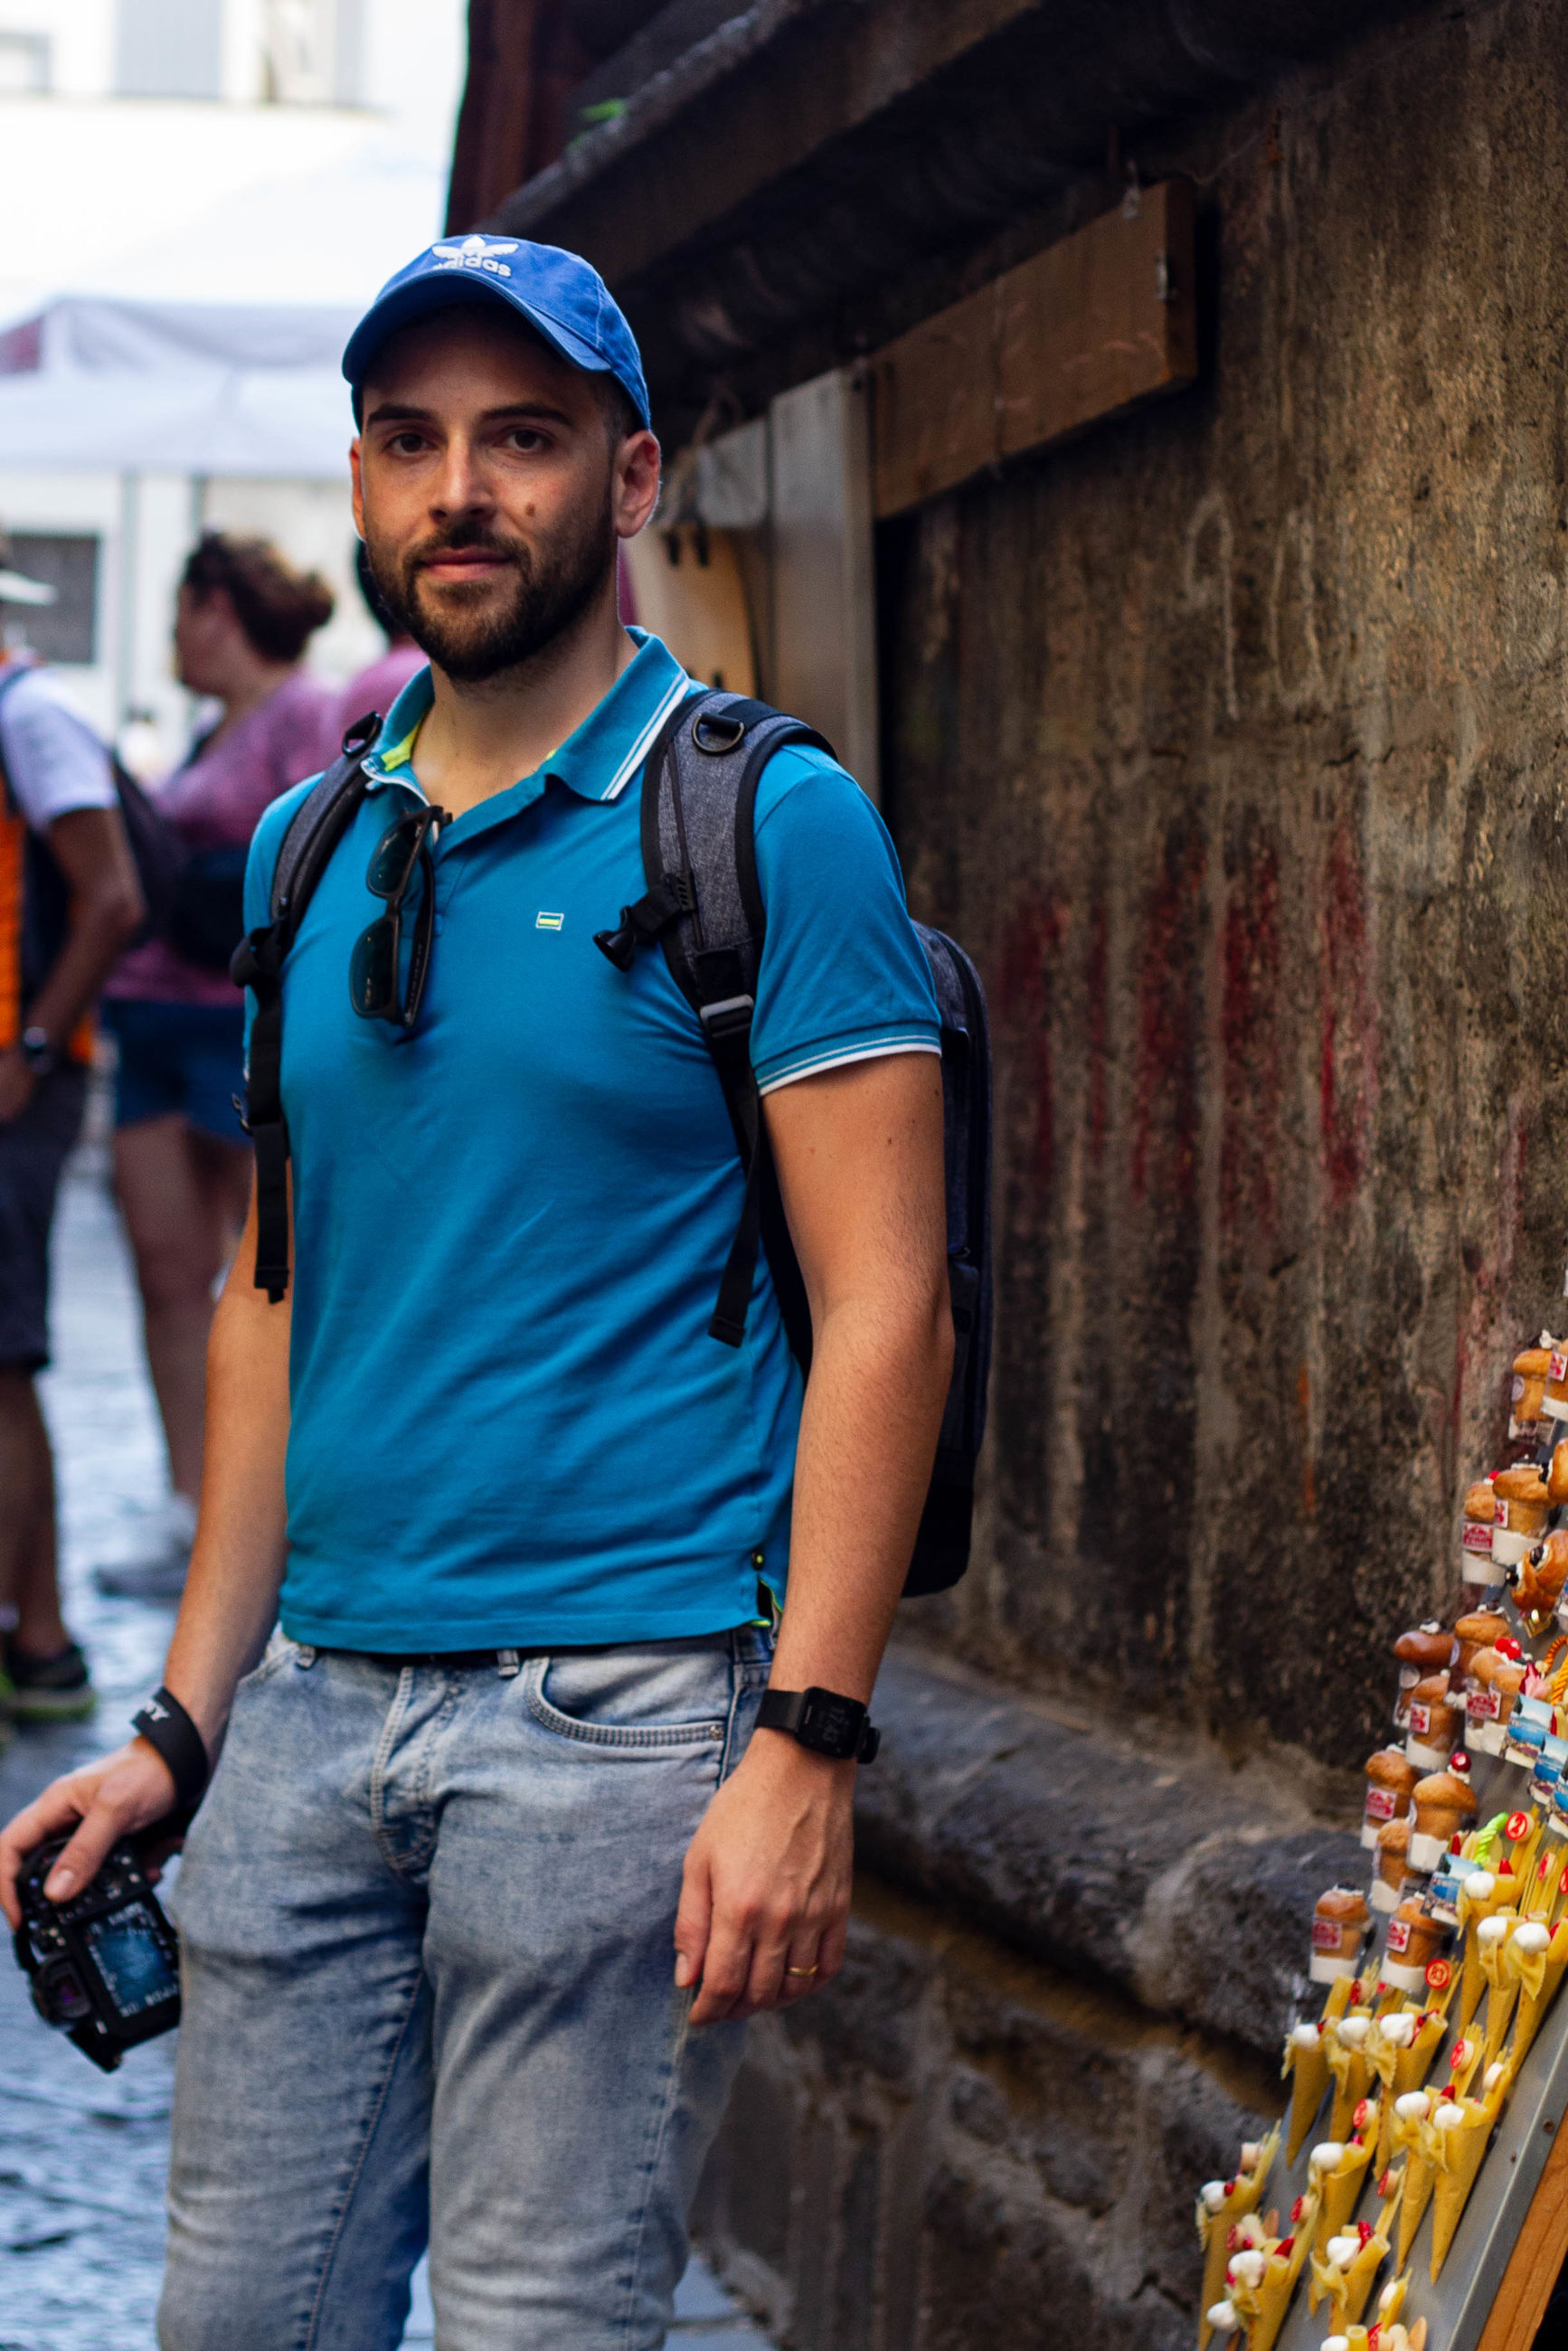 young adult, three quarter length, one person, young men, standing, real people, leisure activity, casual clothing, lifestyles, portrait, looking at camera, focus on foreground, architecture, front view, hat, incidental people, day, built structure, outdoors